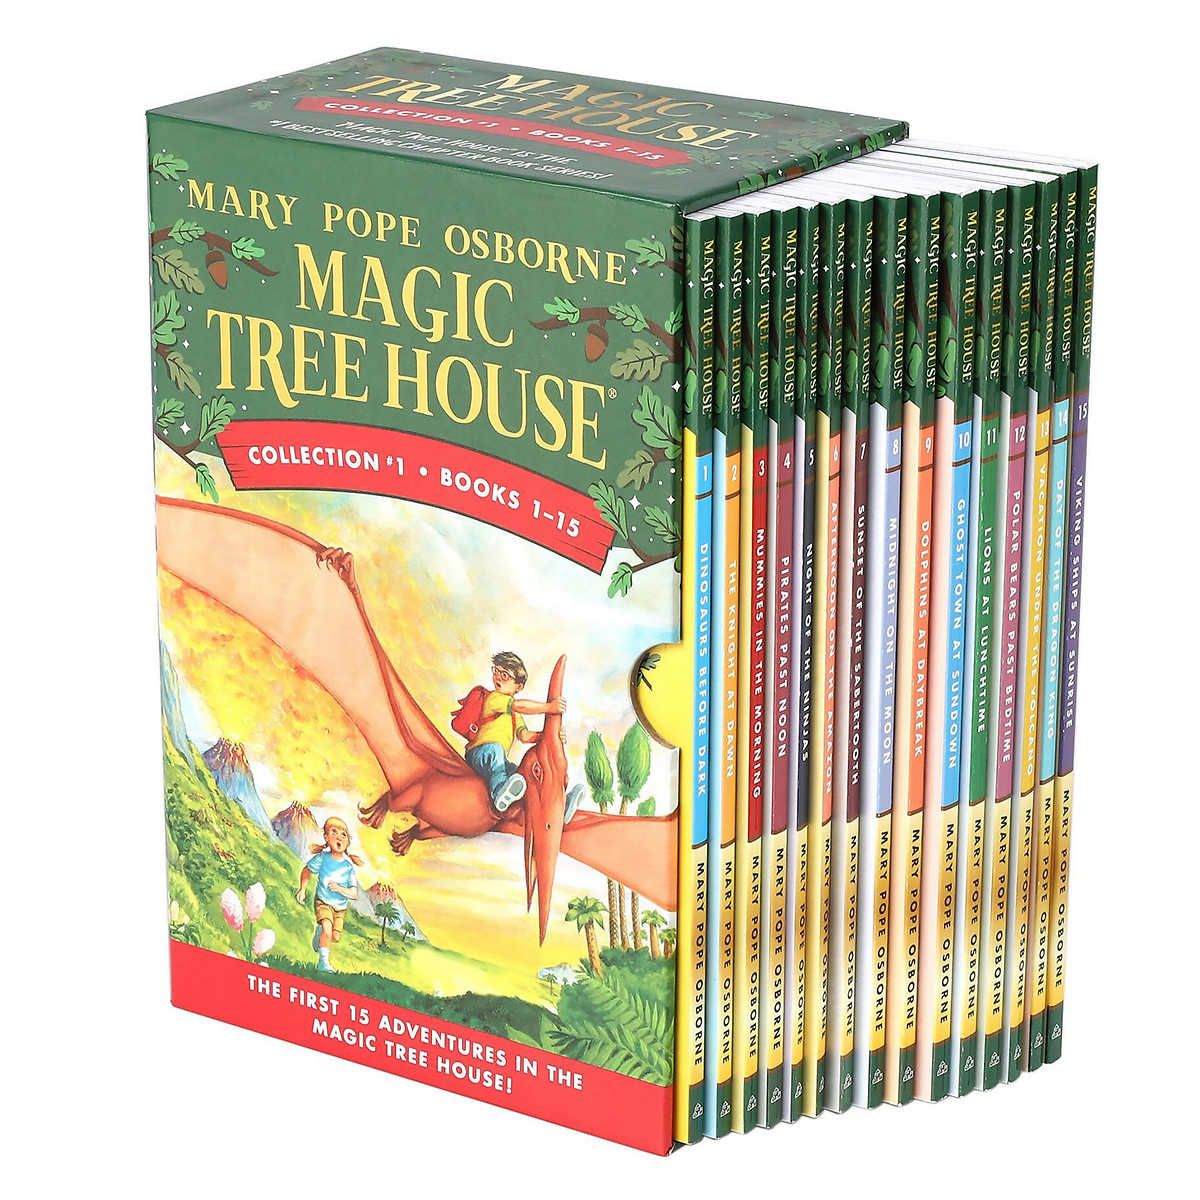 Magic Tree House Collection 1 1 15 Book Box Set By Mary Pope